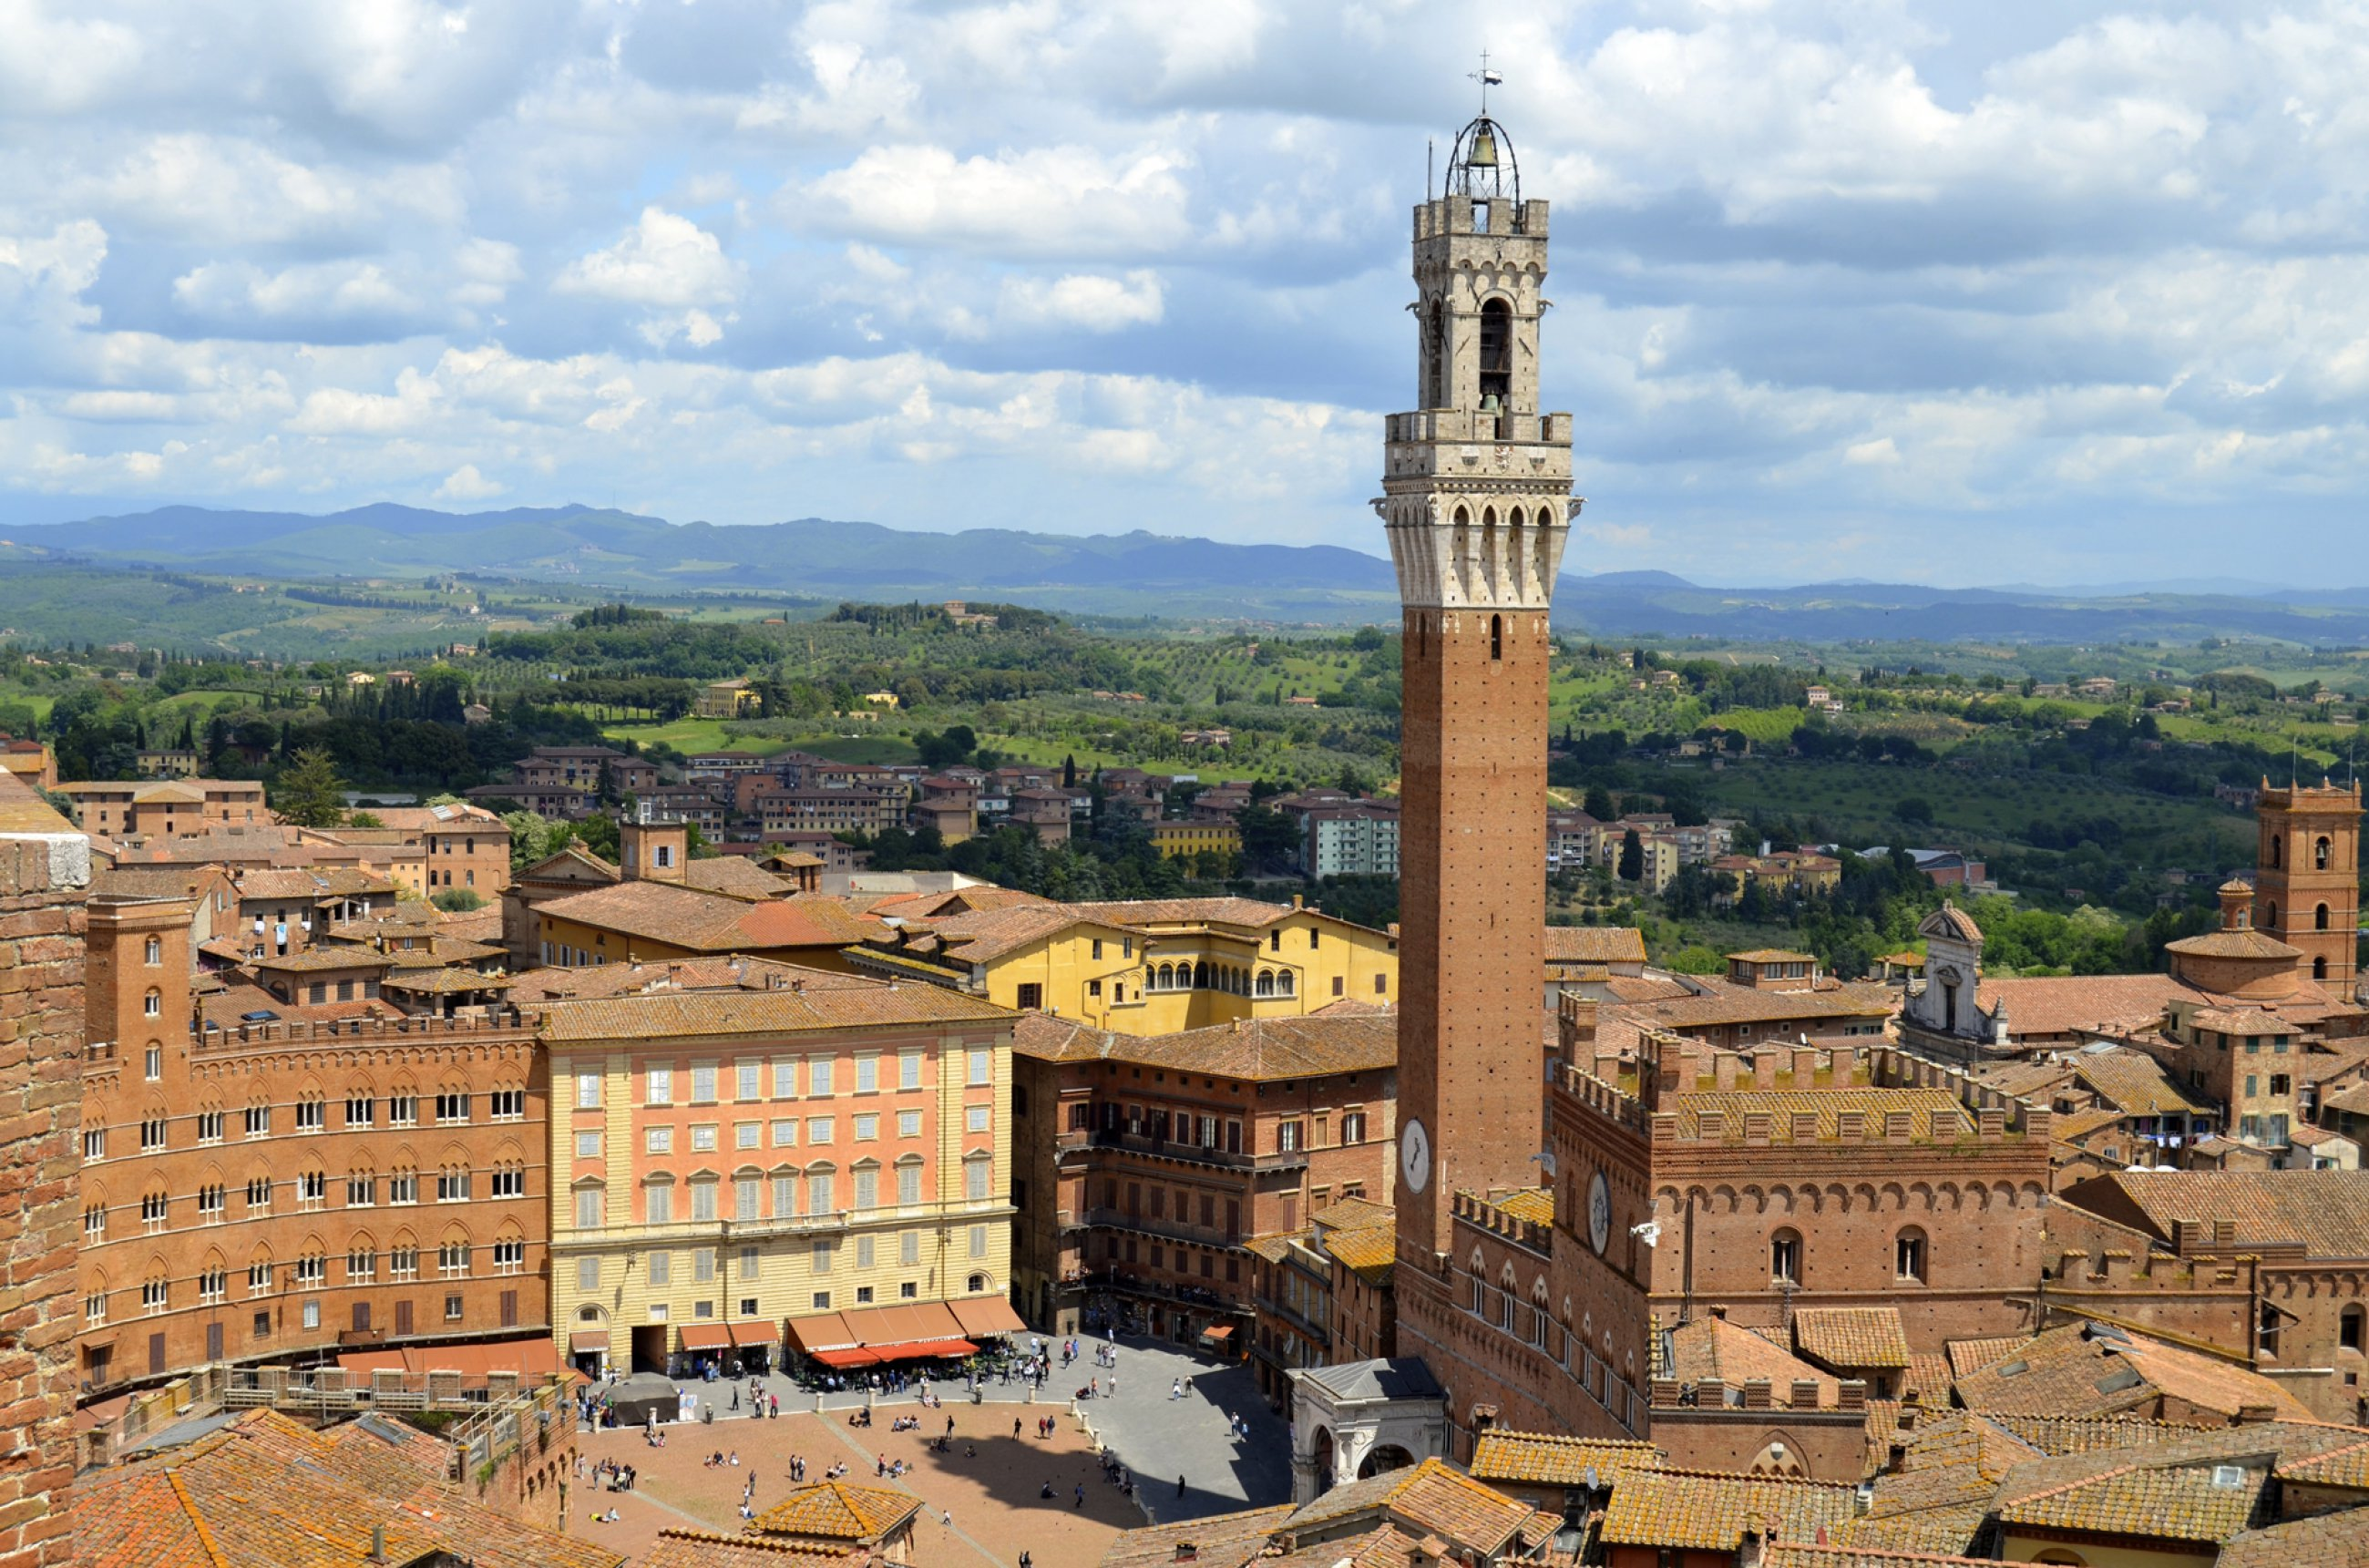 https://bubo.sk/uploads/galleries/5053/siena-tuscany-italy-12may2013.jpg